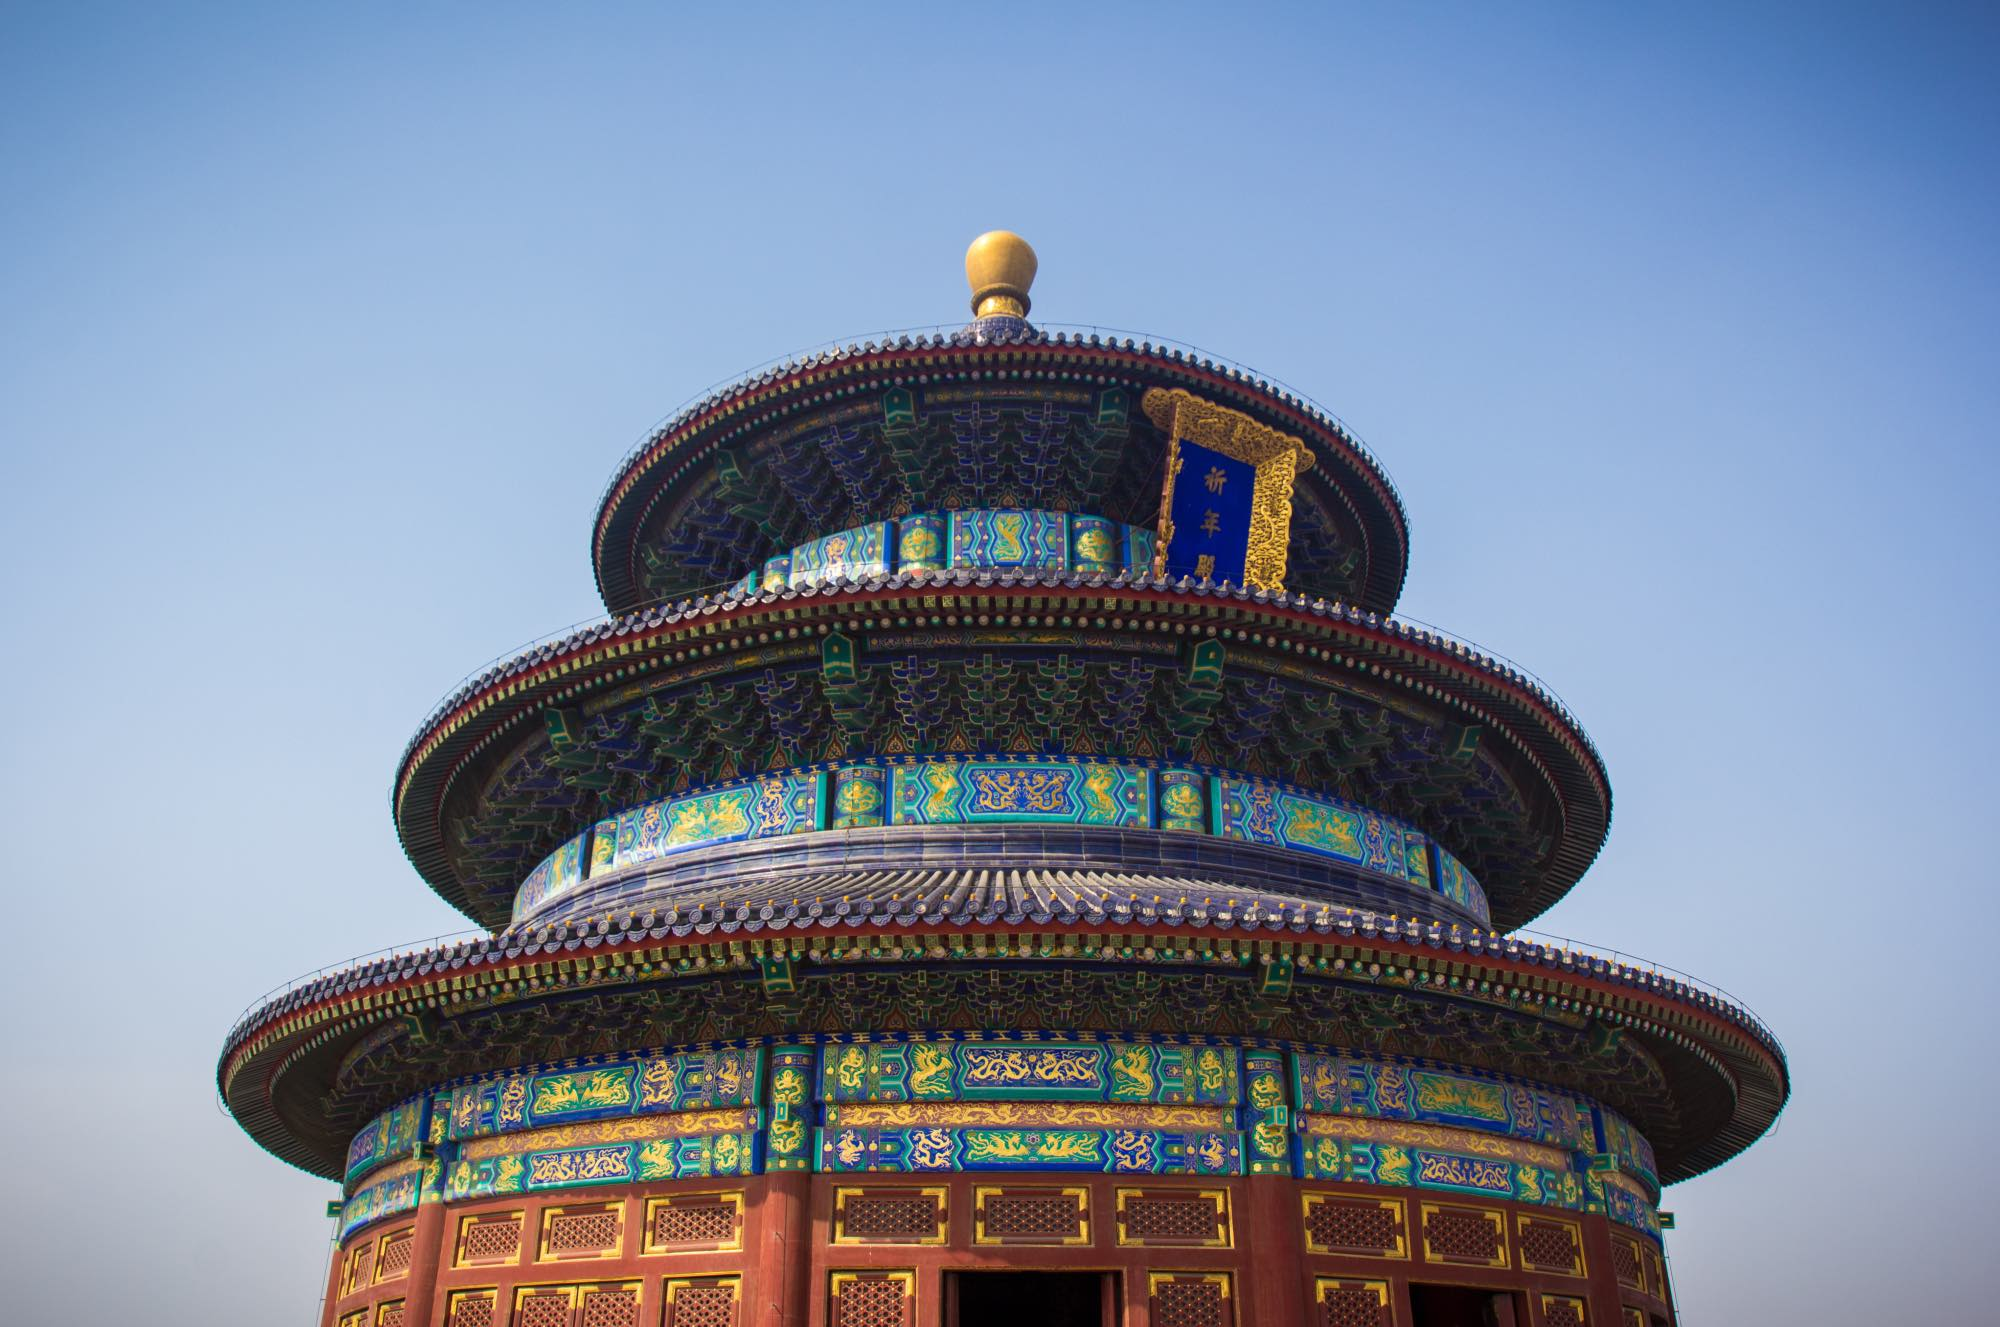 Things to see in Beijing, China